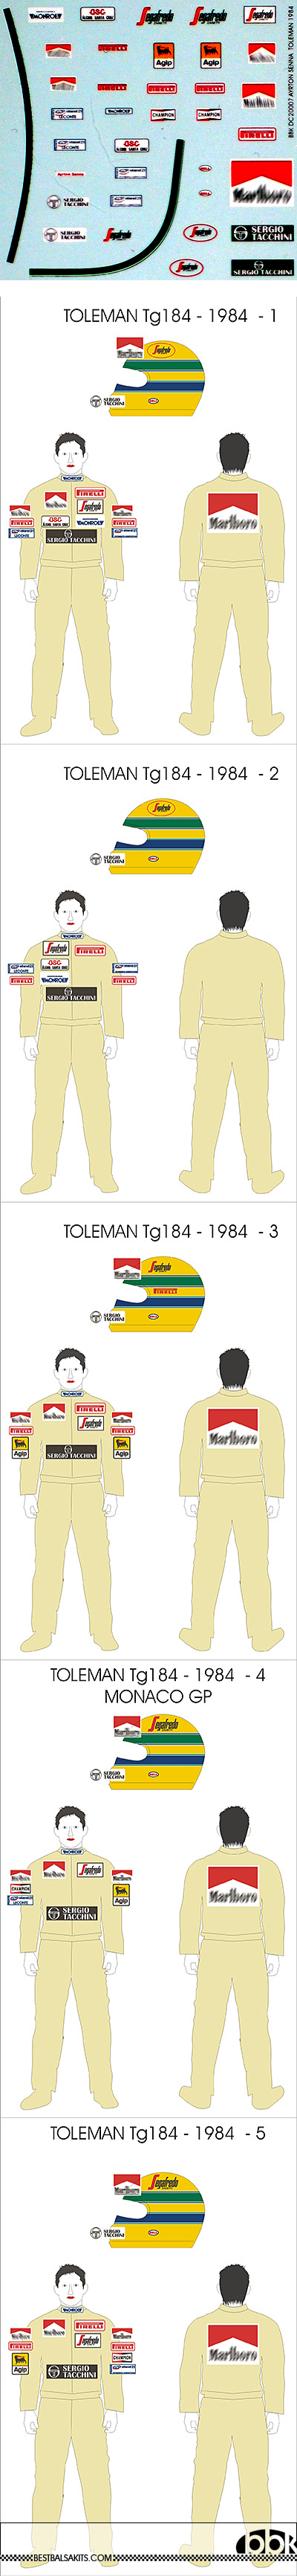 BBK 1/20 SENNA DECAL TOLEMAN 1984